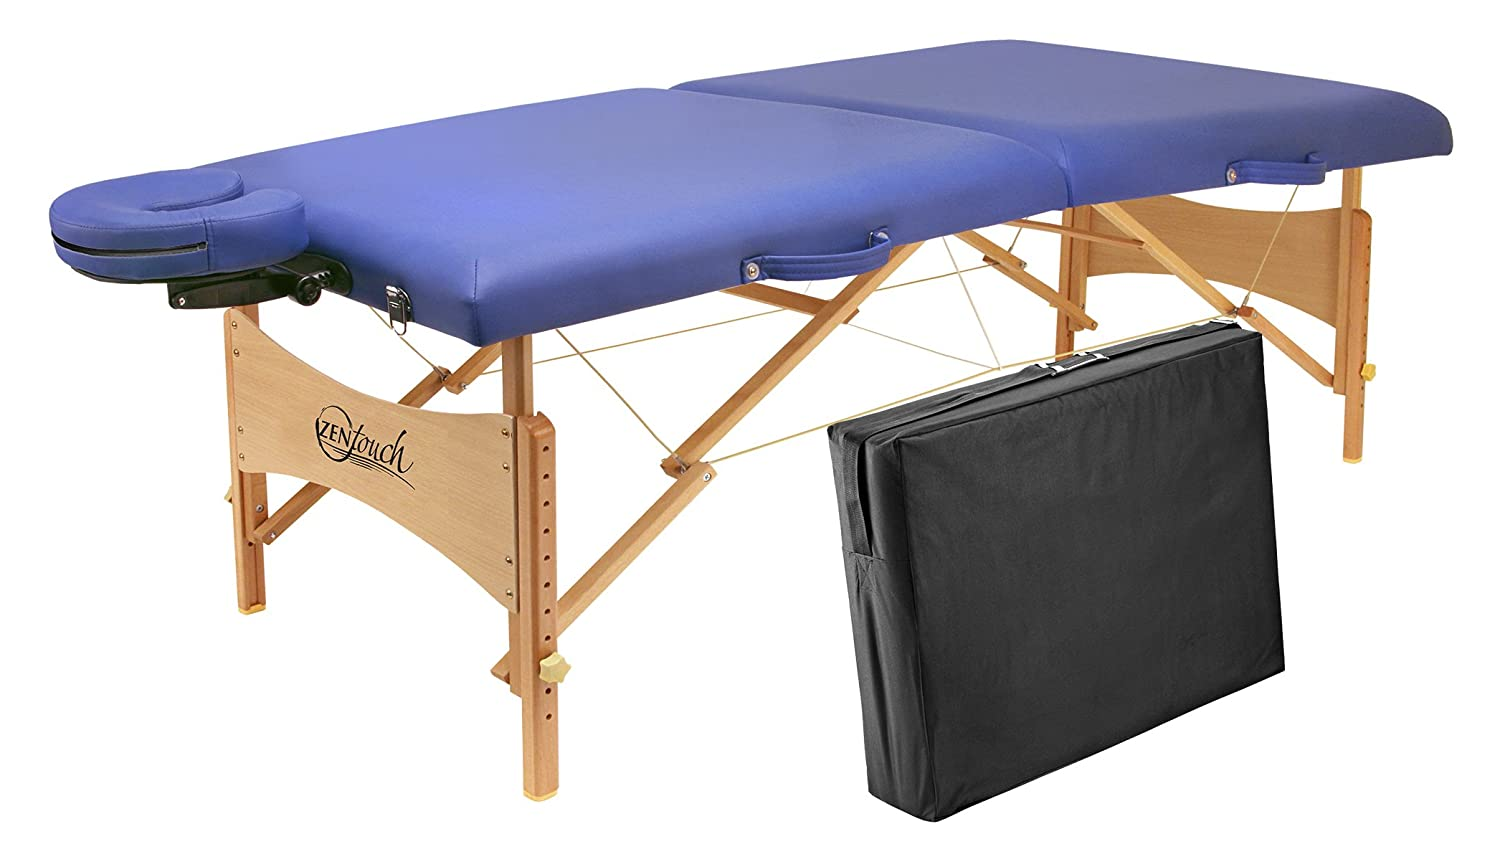 Master Massage Brady Lightweight Portable Massage Table, Sky Blue, 28 Inch Master Home Products LTD. 54431